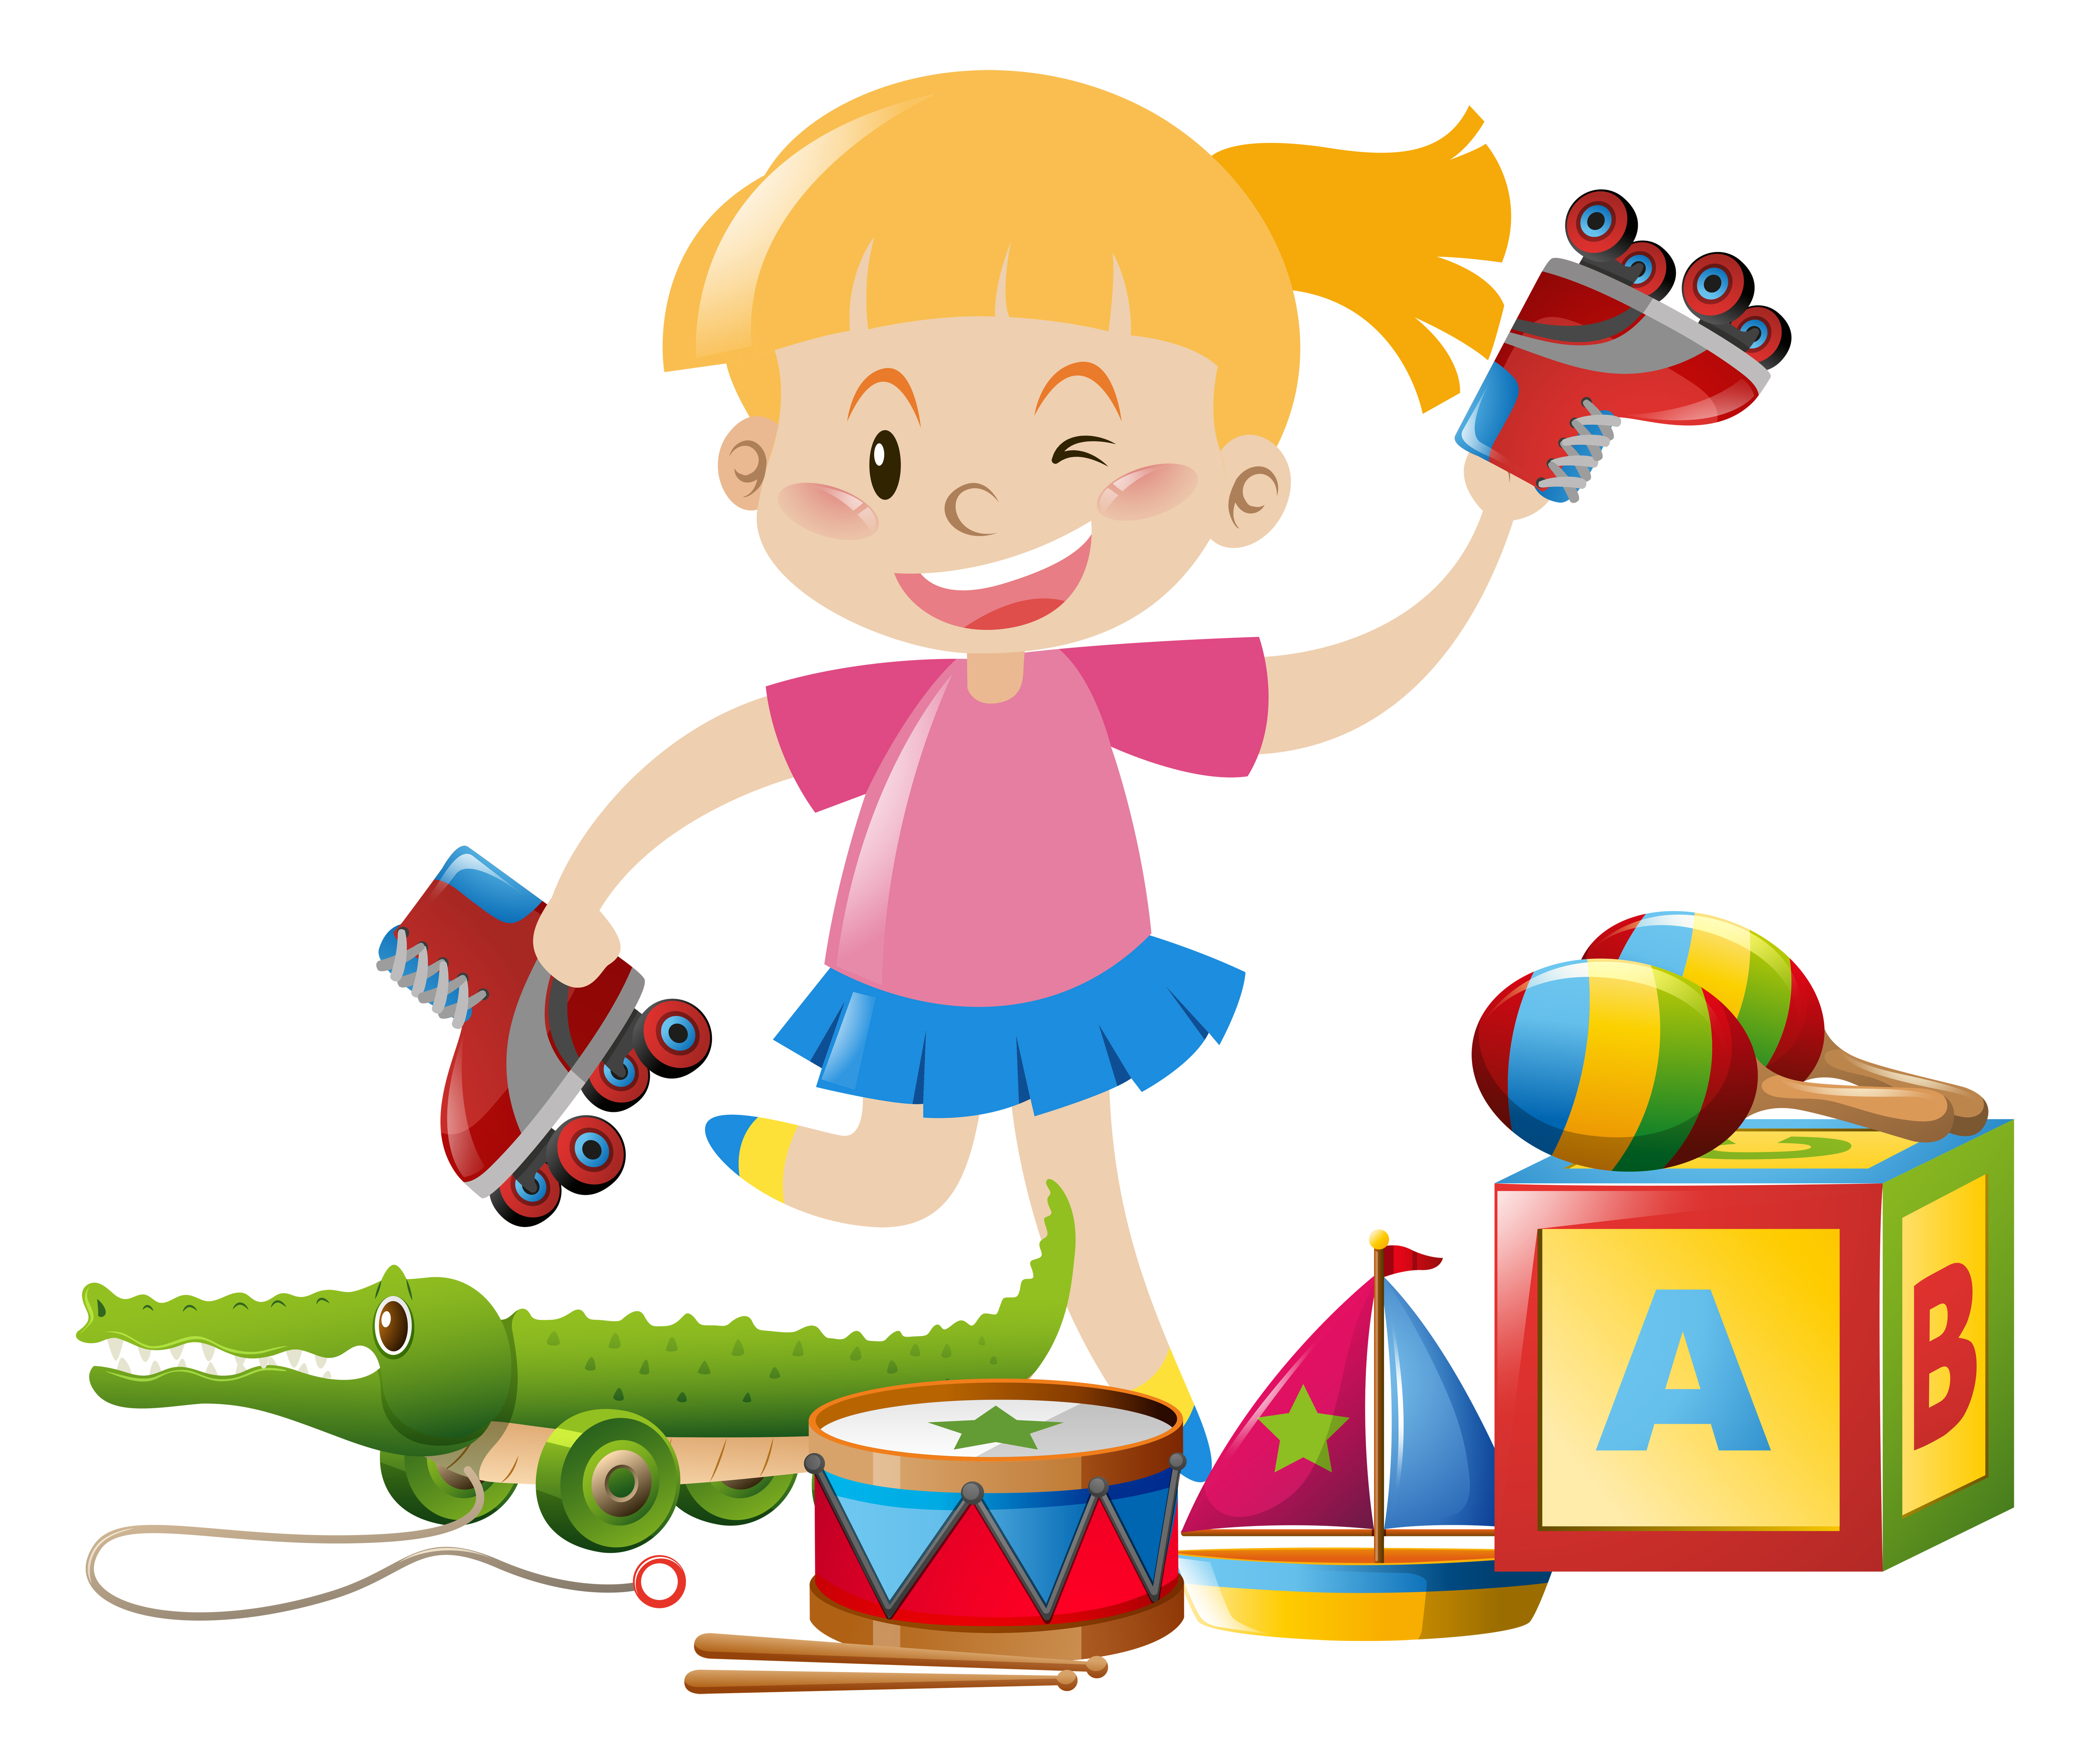 Girl And Many Toys On The Floor Download Free Vectors Clipart